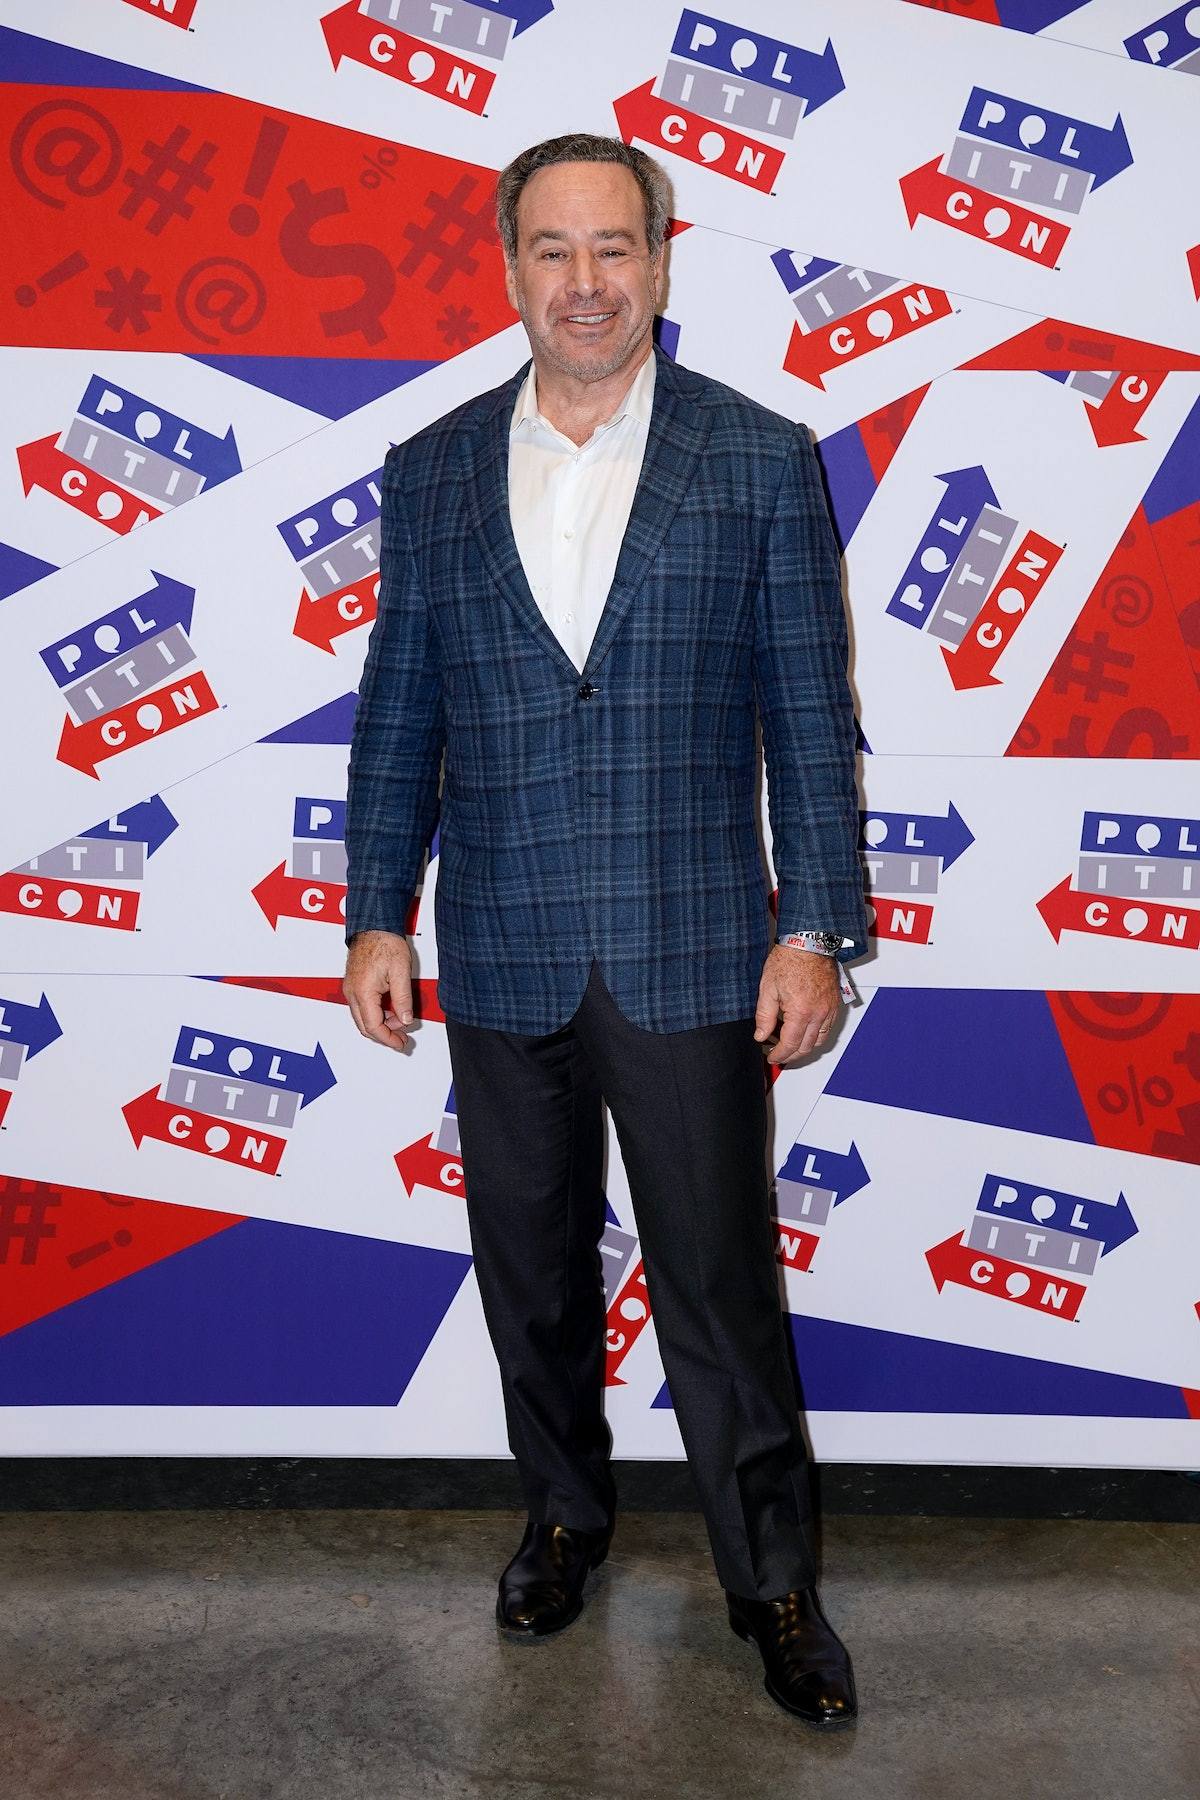 NASHVILLE, TENNESSEE - OCTOBER 26: David Frum attends the 2019 Politicon at Music City Center on Oct...